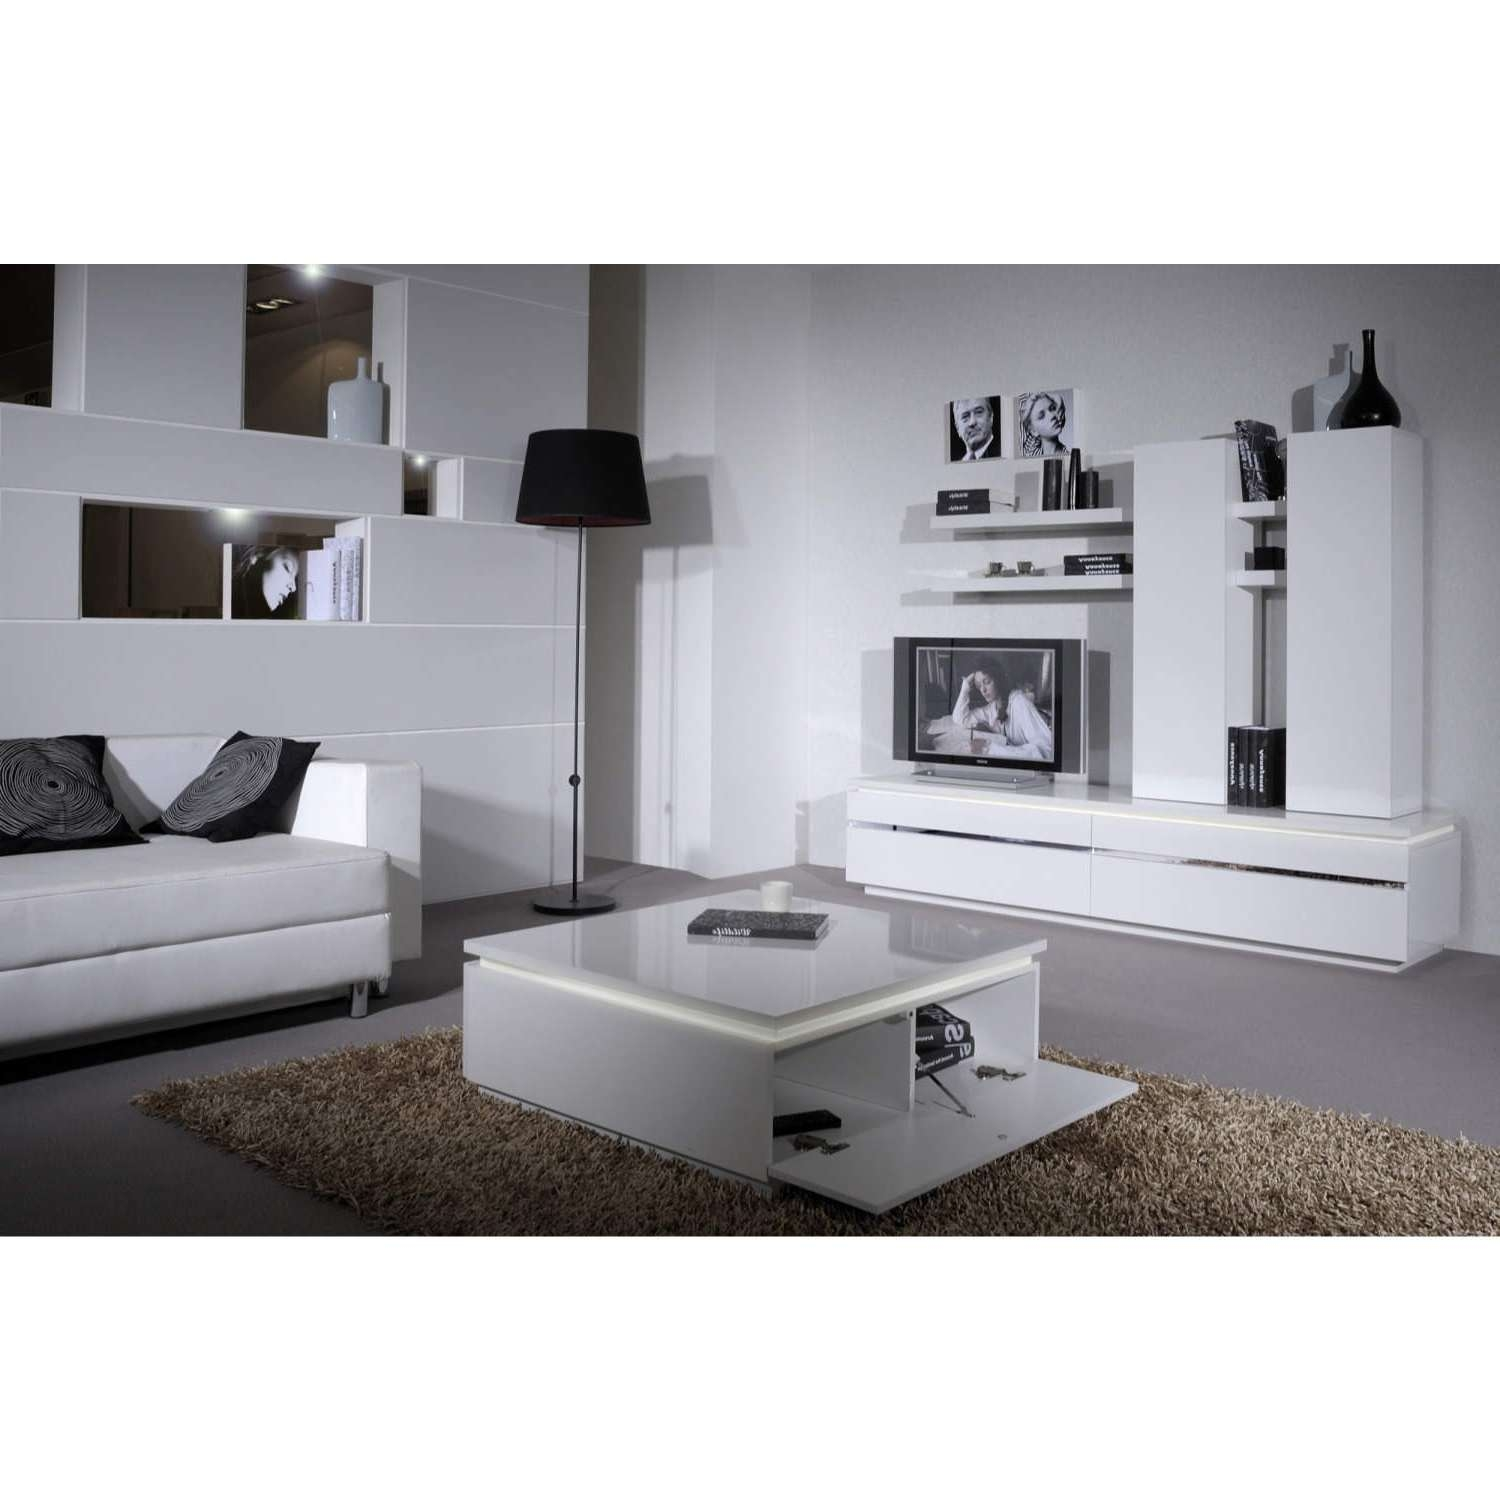 Coffee Tables : White Coffee Table With Storage Swing Swivel Top With Regard To Well Known Gloss Coffee Tables (View 18 of 20)